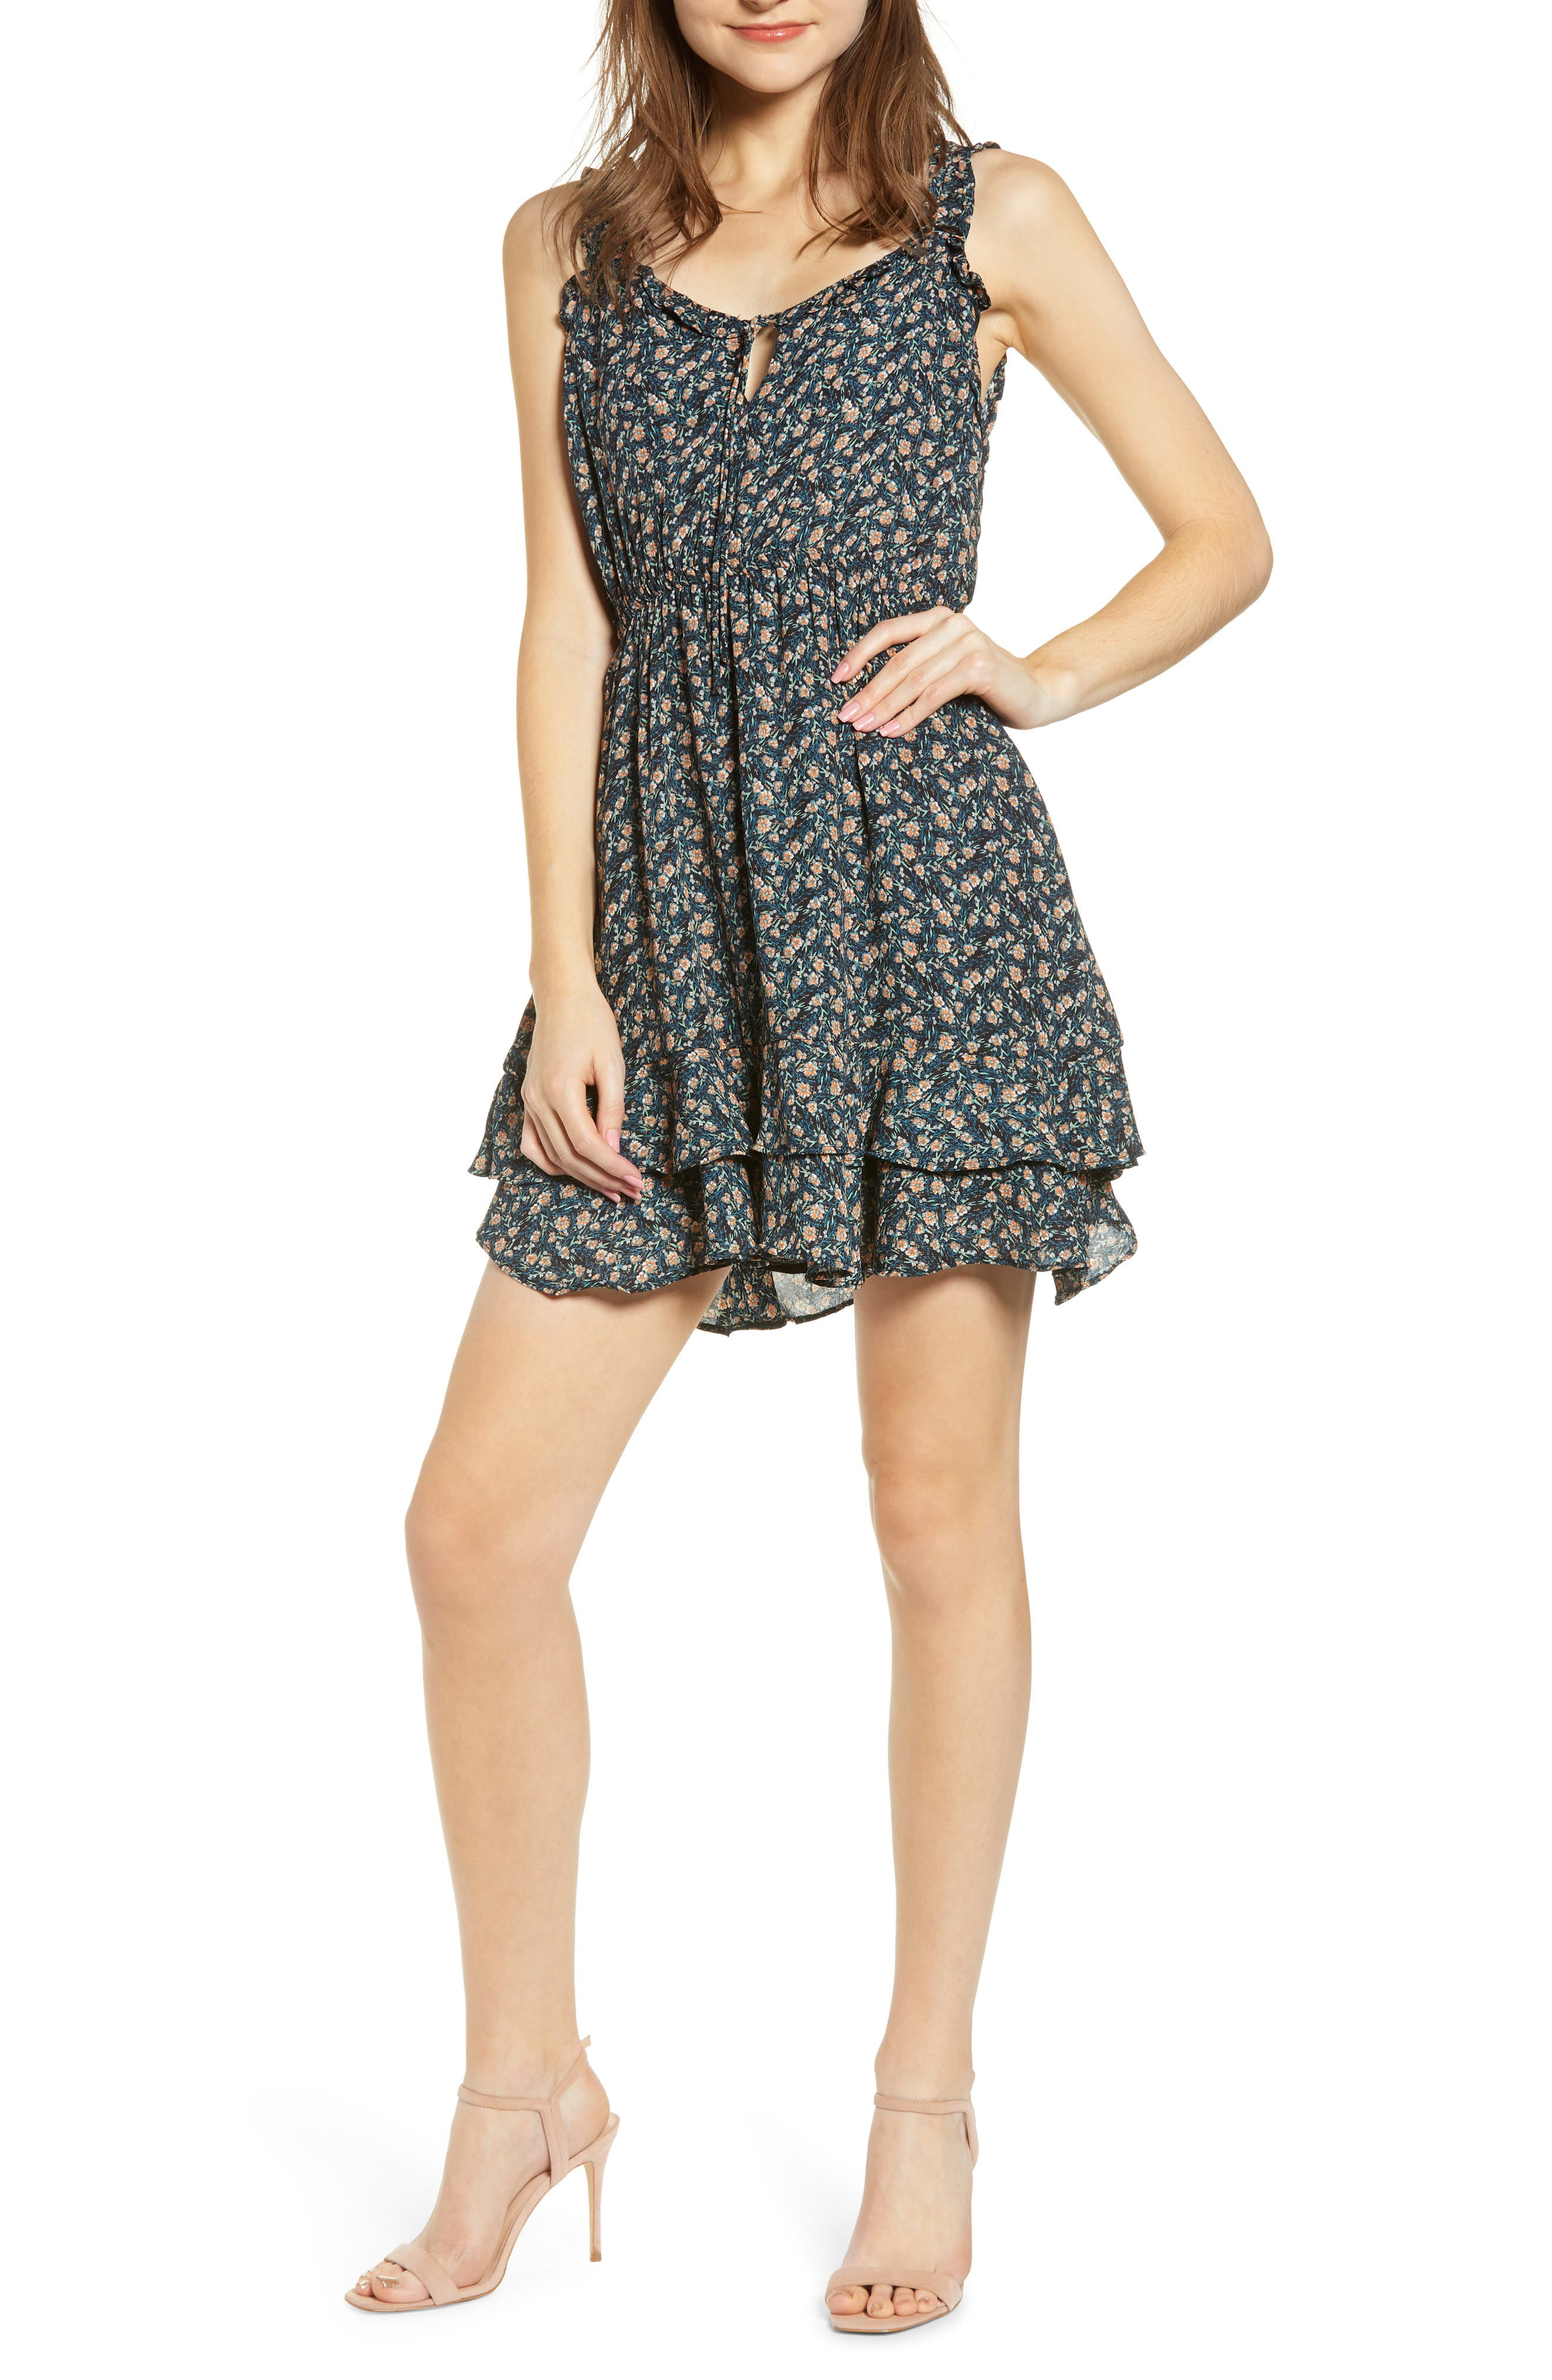 Cupcakes And Cashmere Deliliah Ditsy Floral Print Dress, Blue